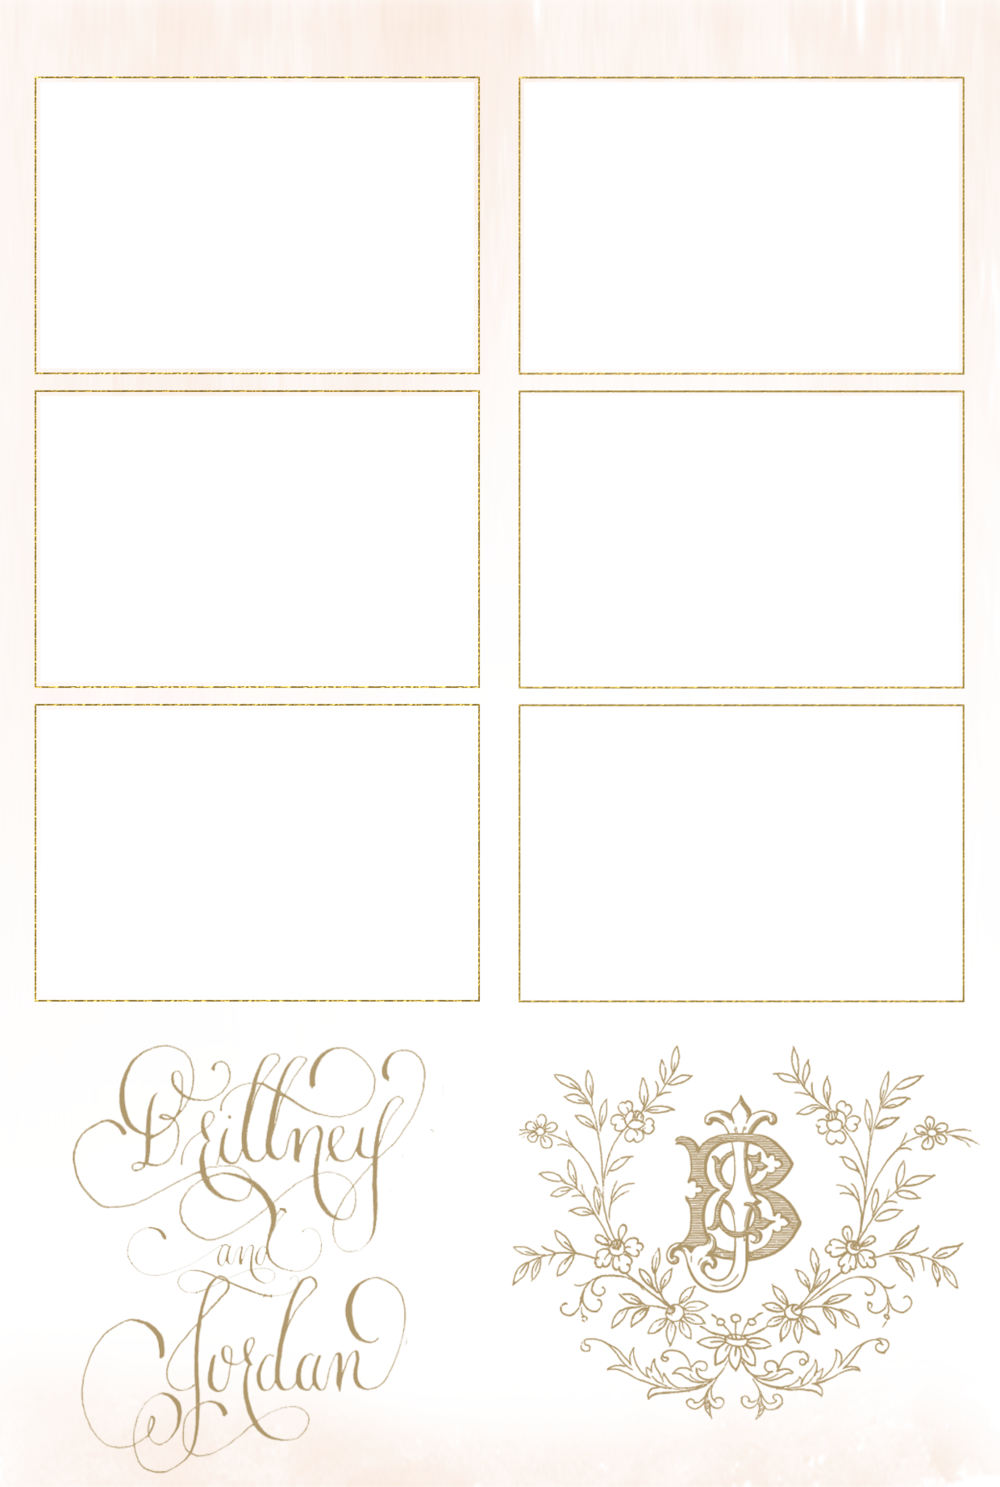 5-27-17 Cooper Steele Template.png